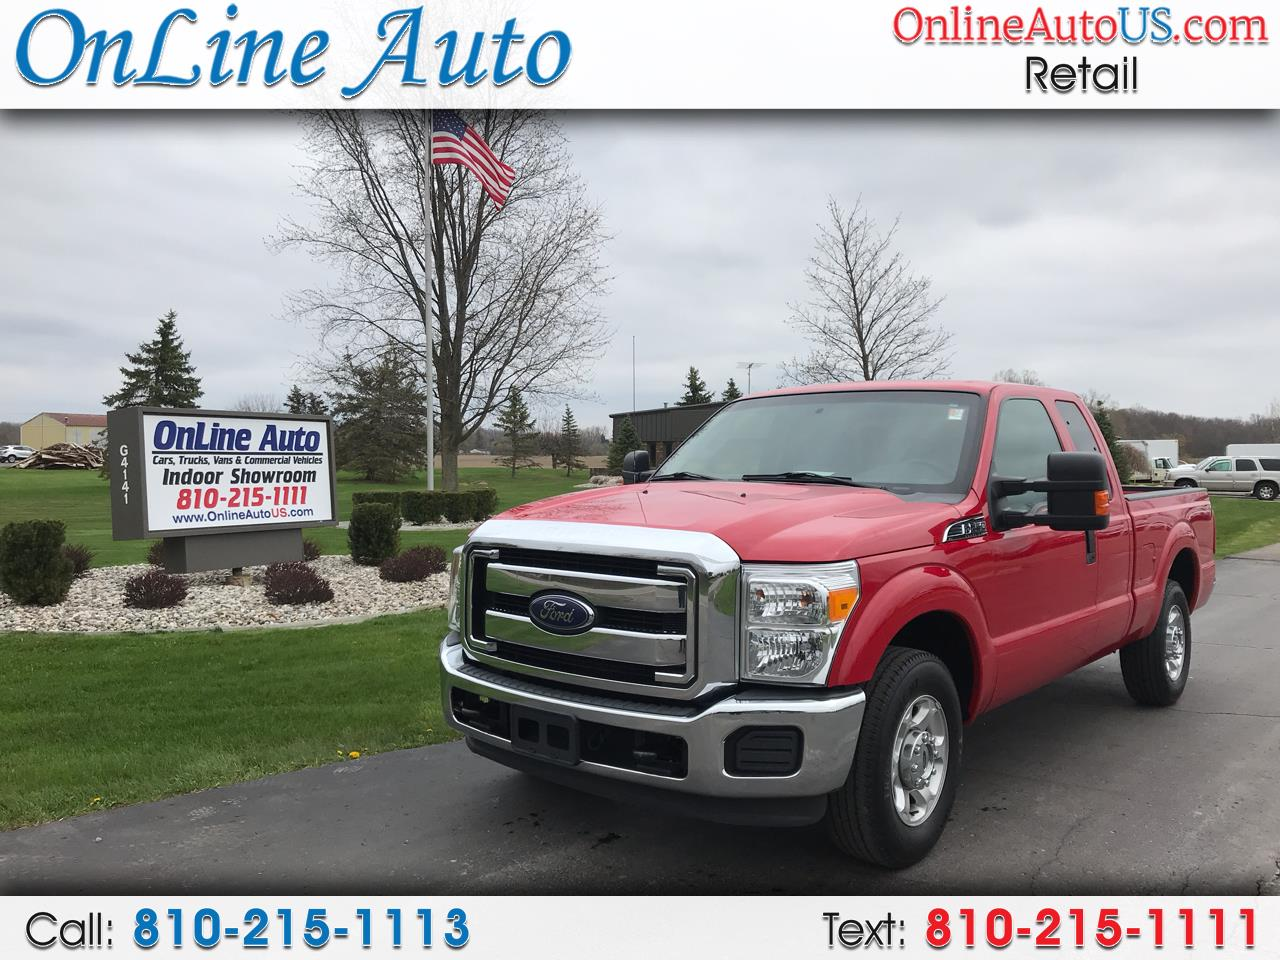 2014 Ford F-250 SUPER DUTY EXTENDED CAB 2WD